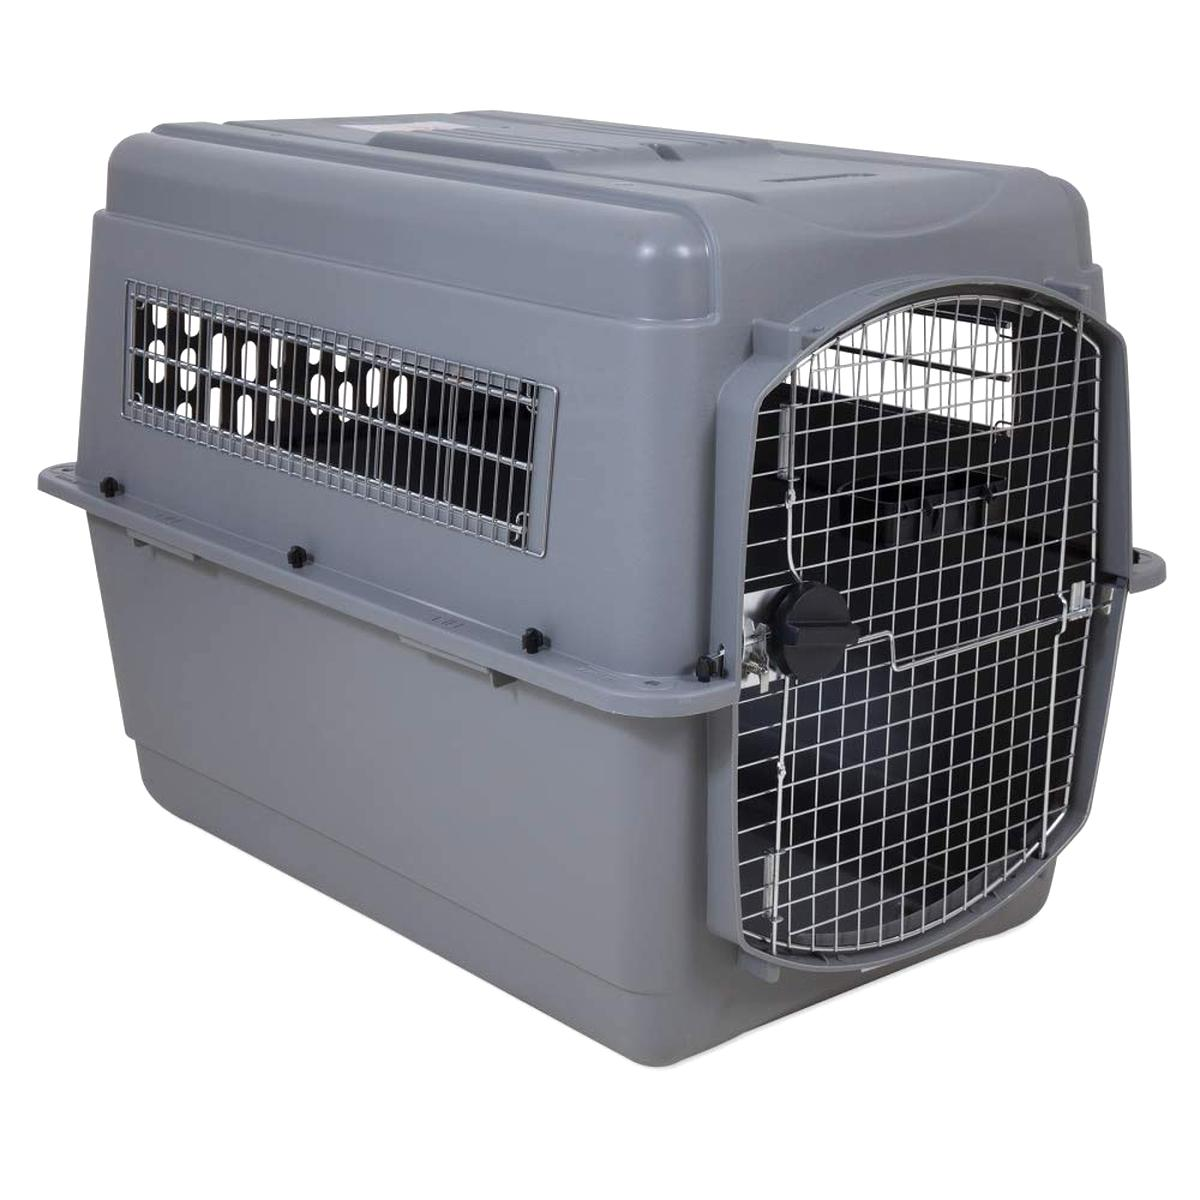 petmate kennel for sale